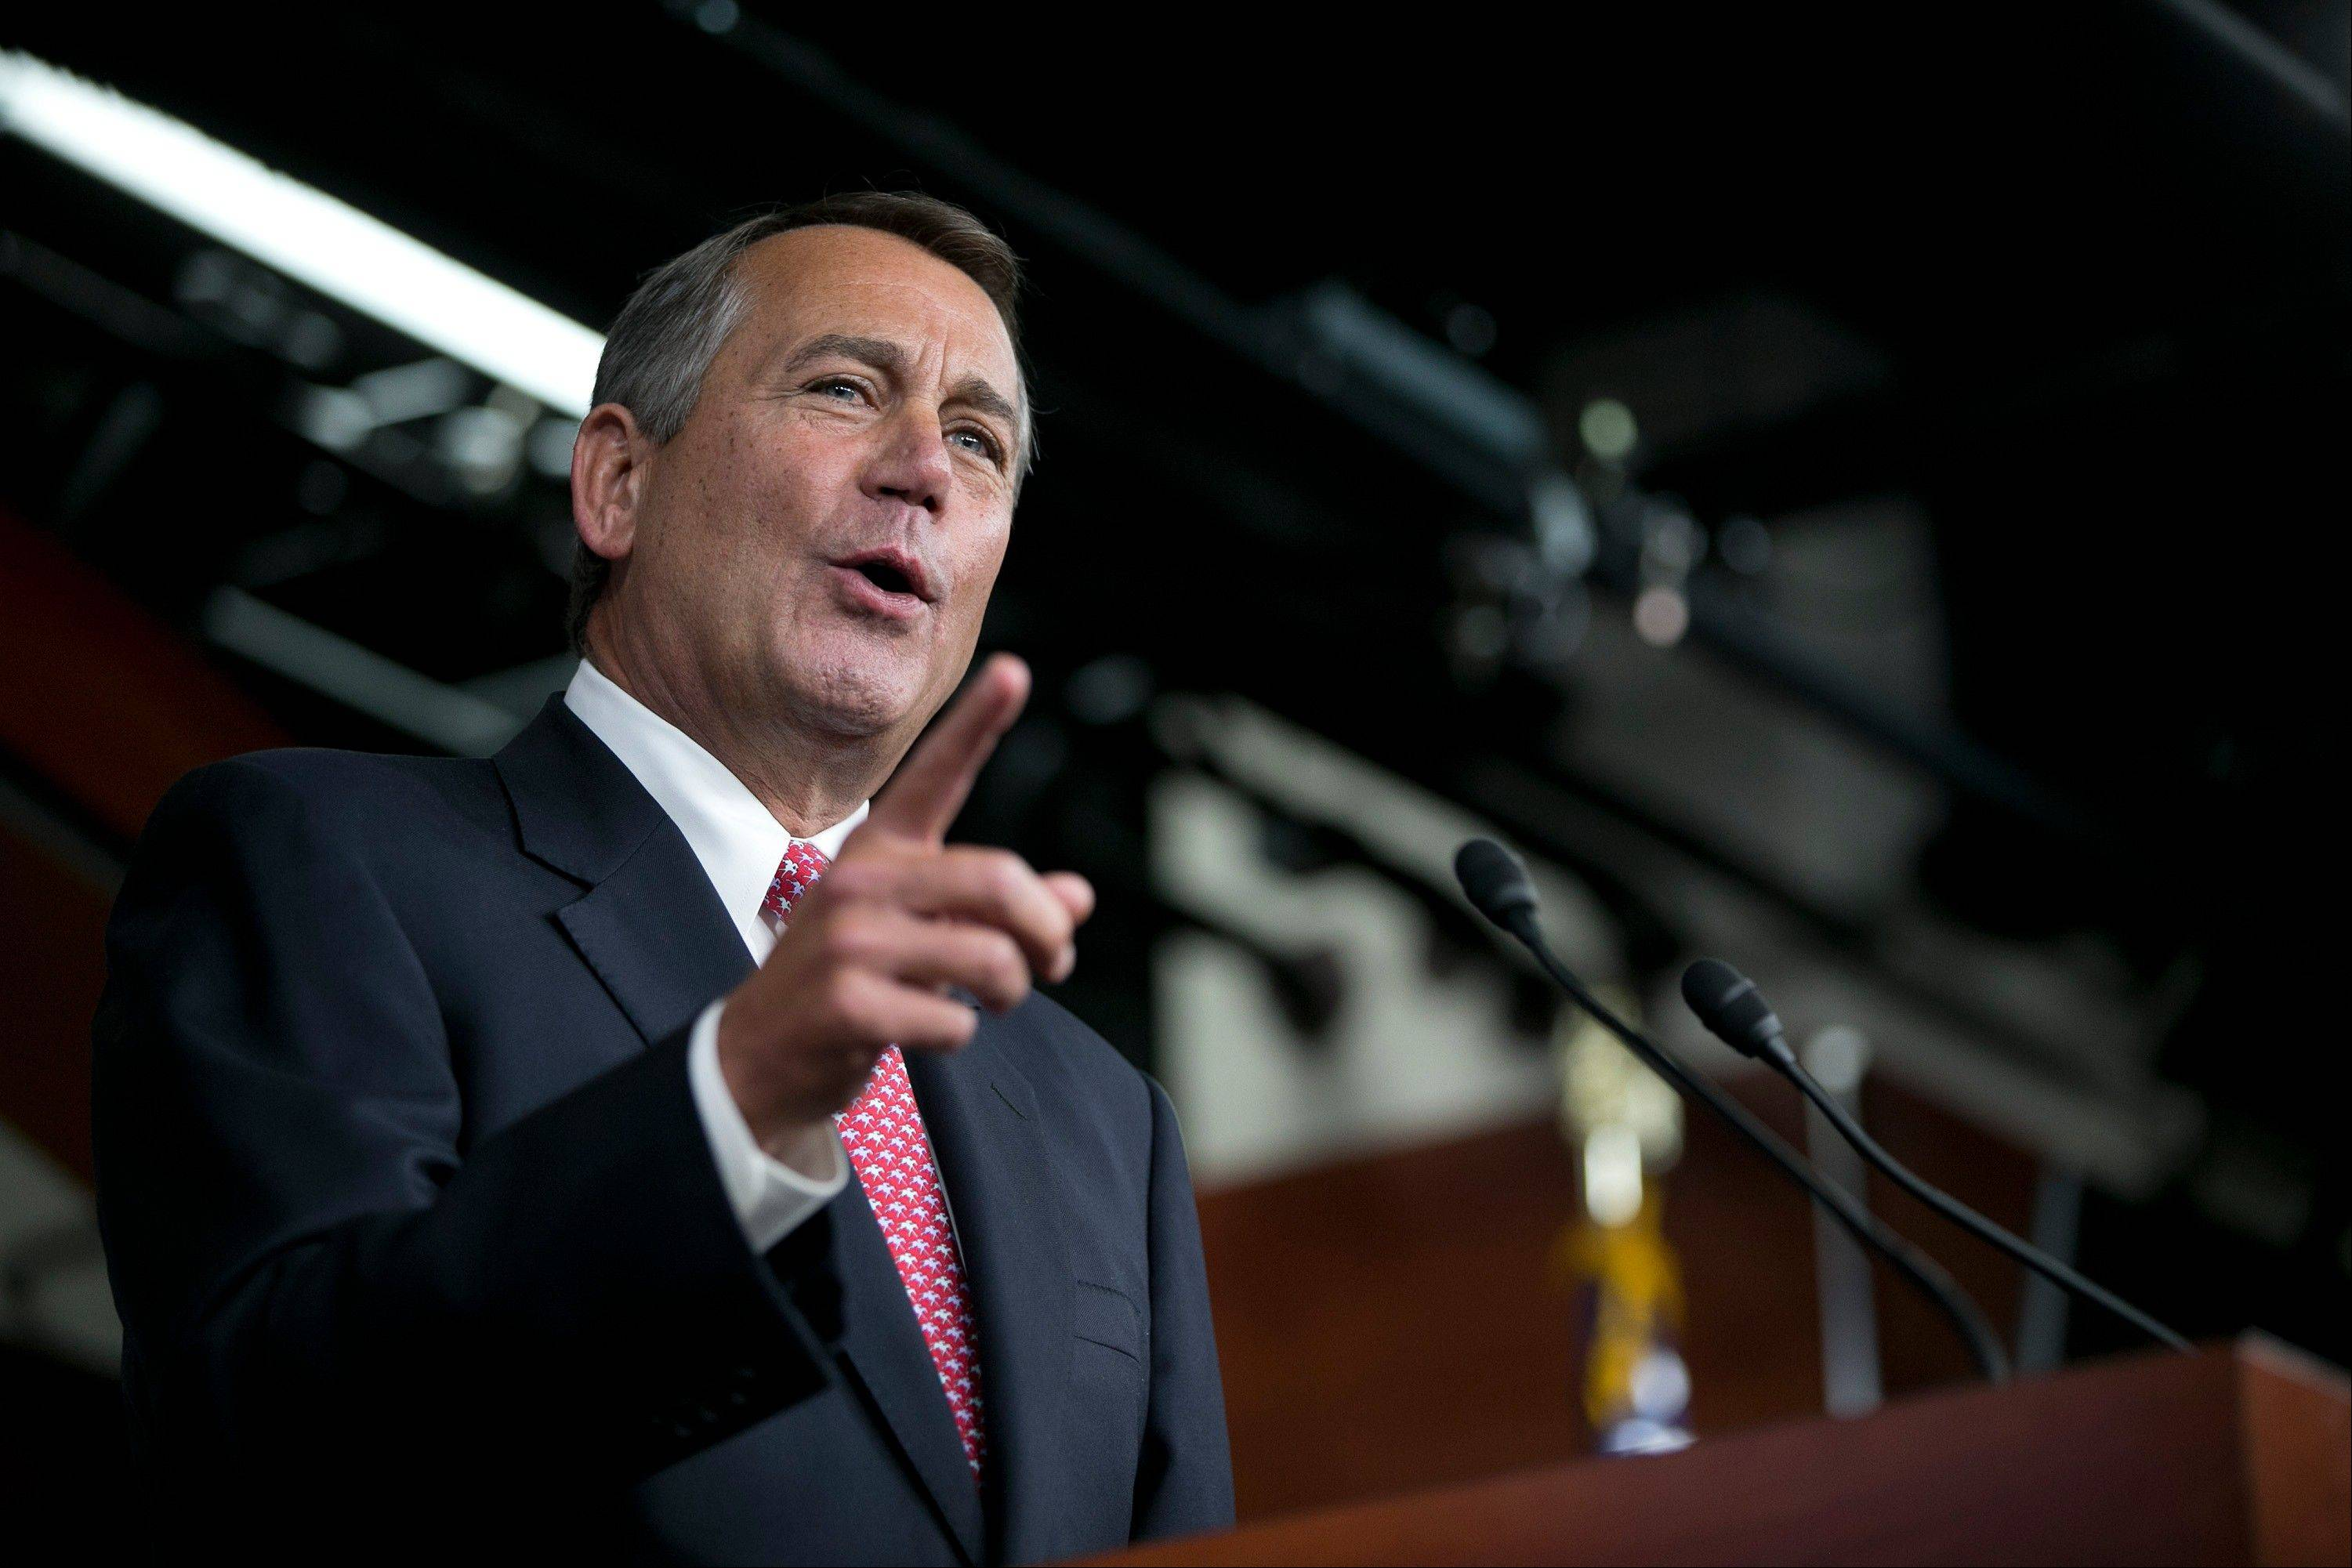 President Barack Obama and House Speaker John Boehner met for a third time at the White House to discuss averting spending cuts and tax increases before a year- end deadline.